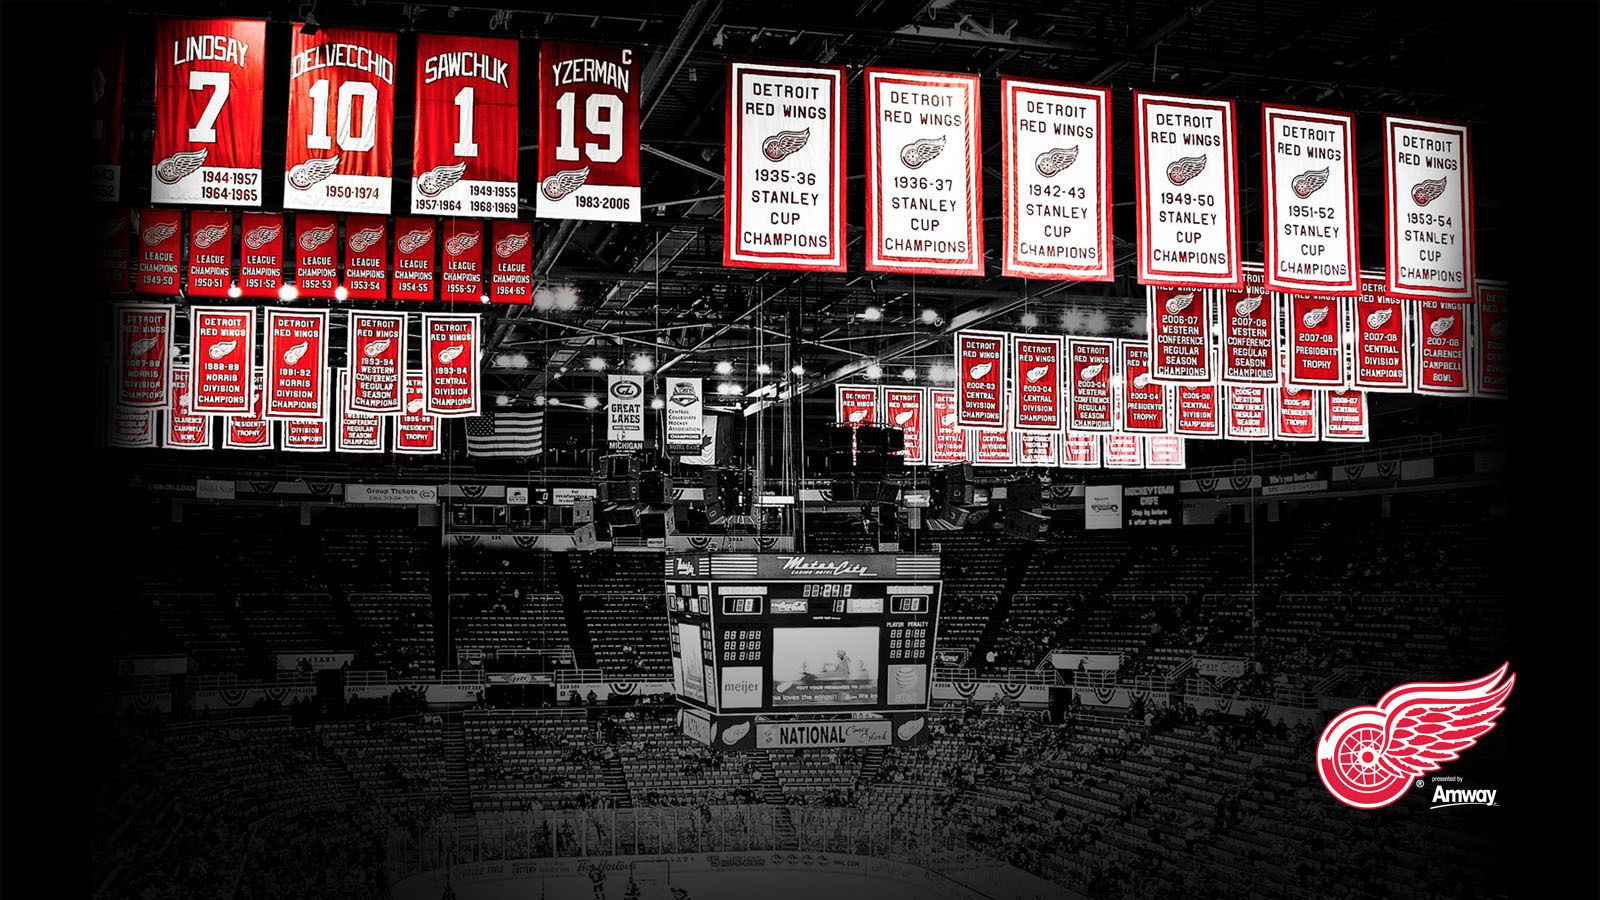 Michael Rasmussen DET C LW 26 3500000 1 53 79 77 77 80 80 81 75 80 77 79 59 71 77 80 76  Detroit-red-wings-wallpaper-38